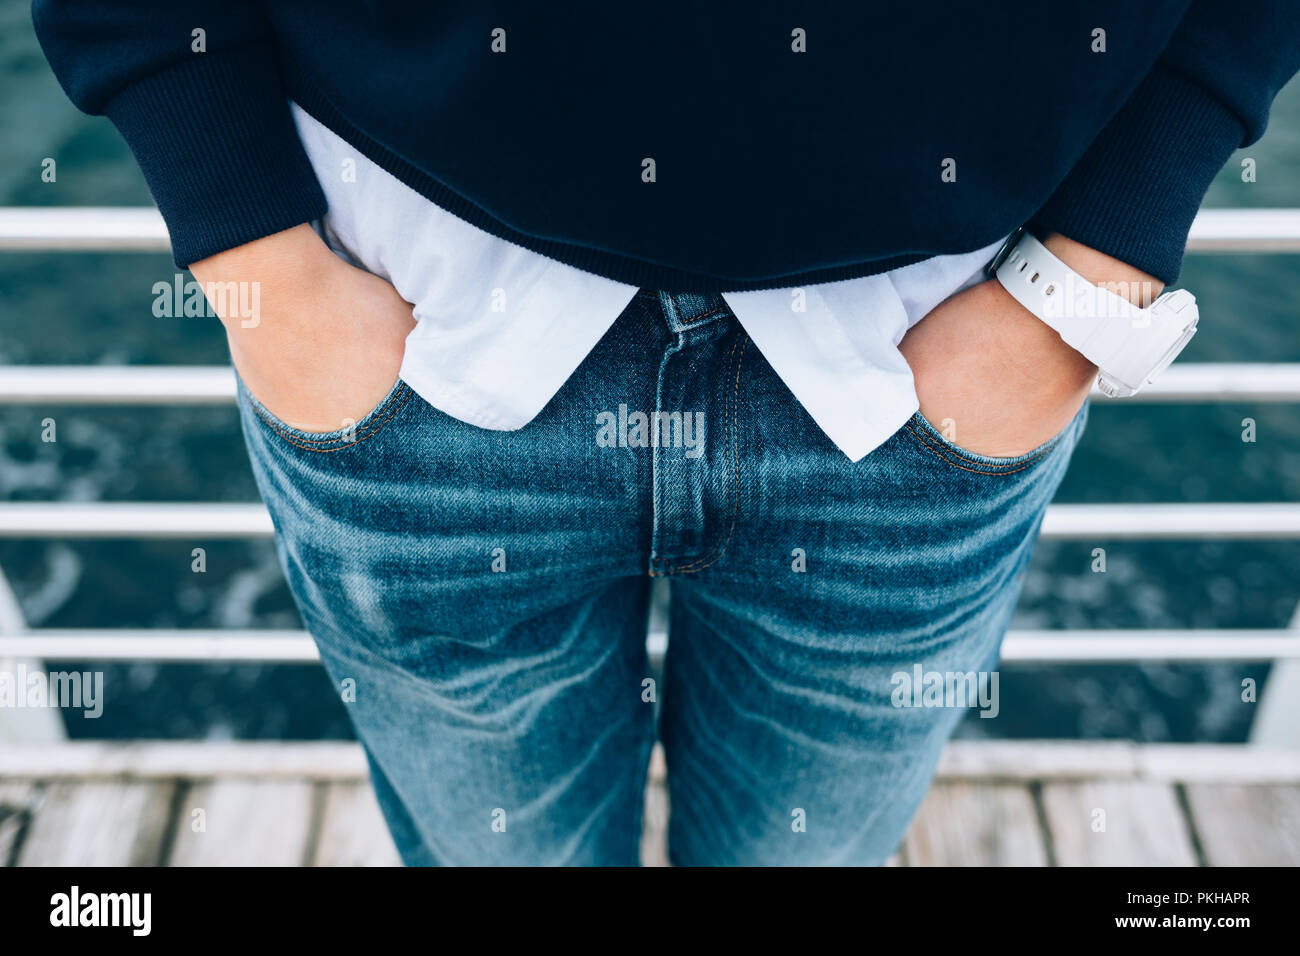 Candid lifestyle close-up of fashionable female wearing wristwatches holding hands in pockets of classic jeans standing on embankment near sea. Detail - Stock Image